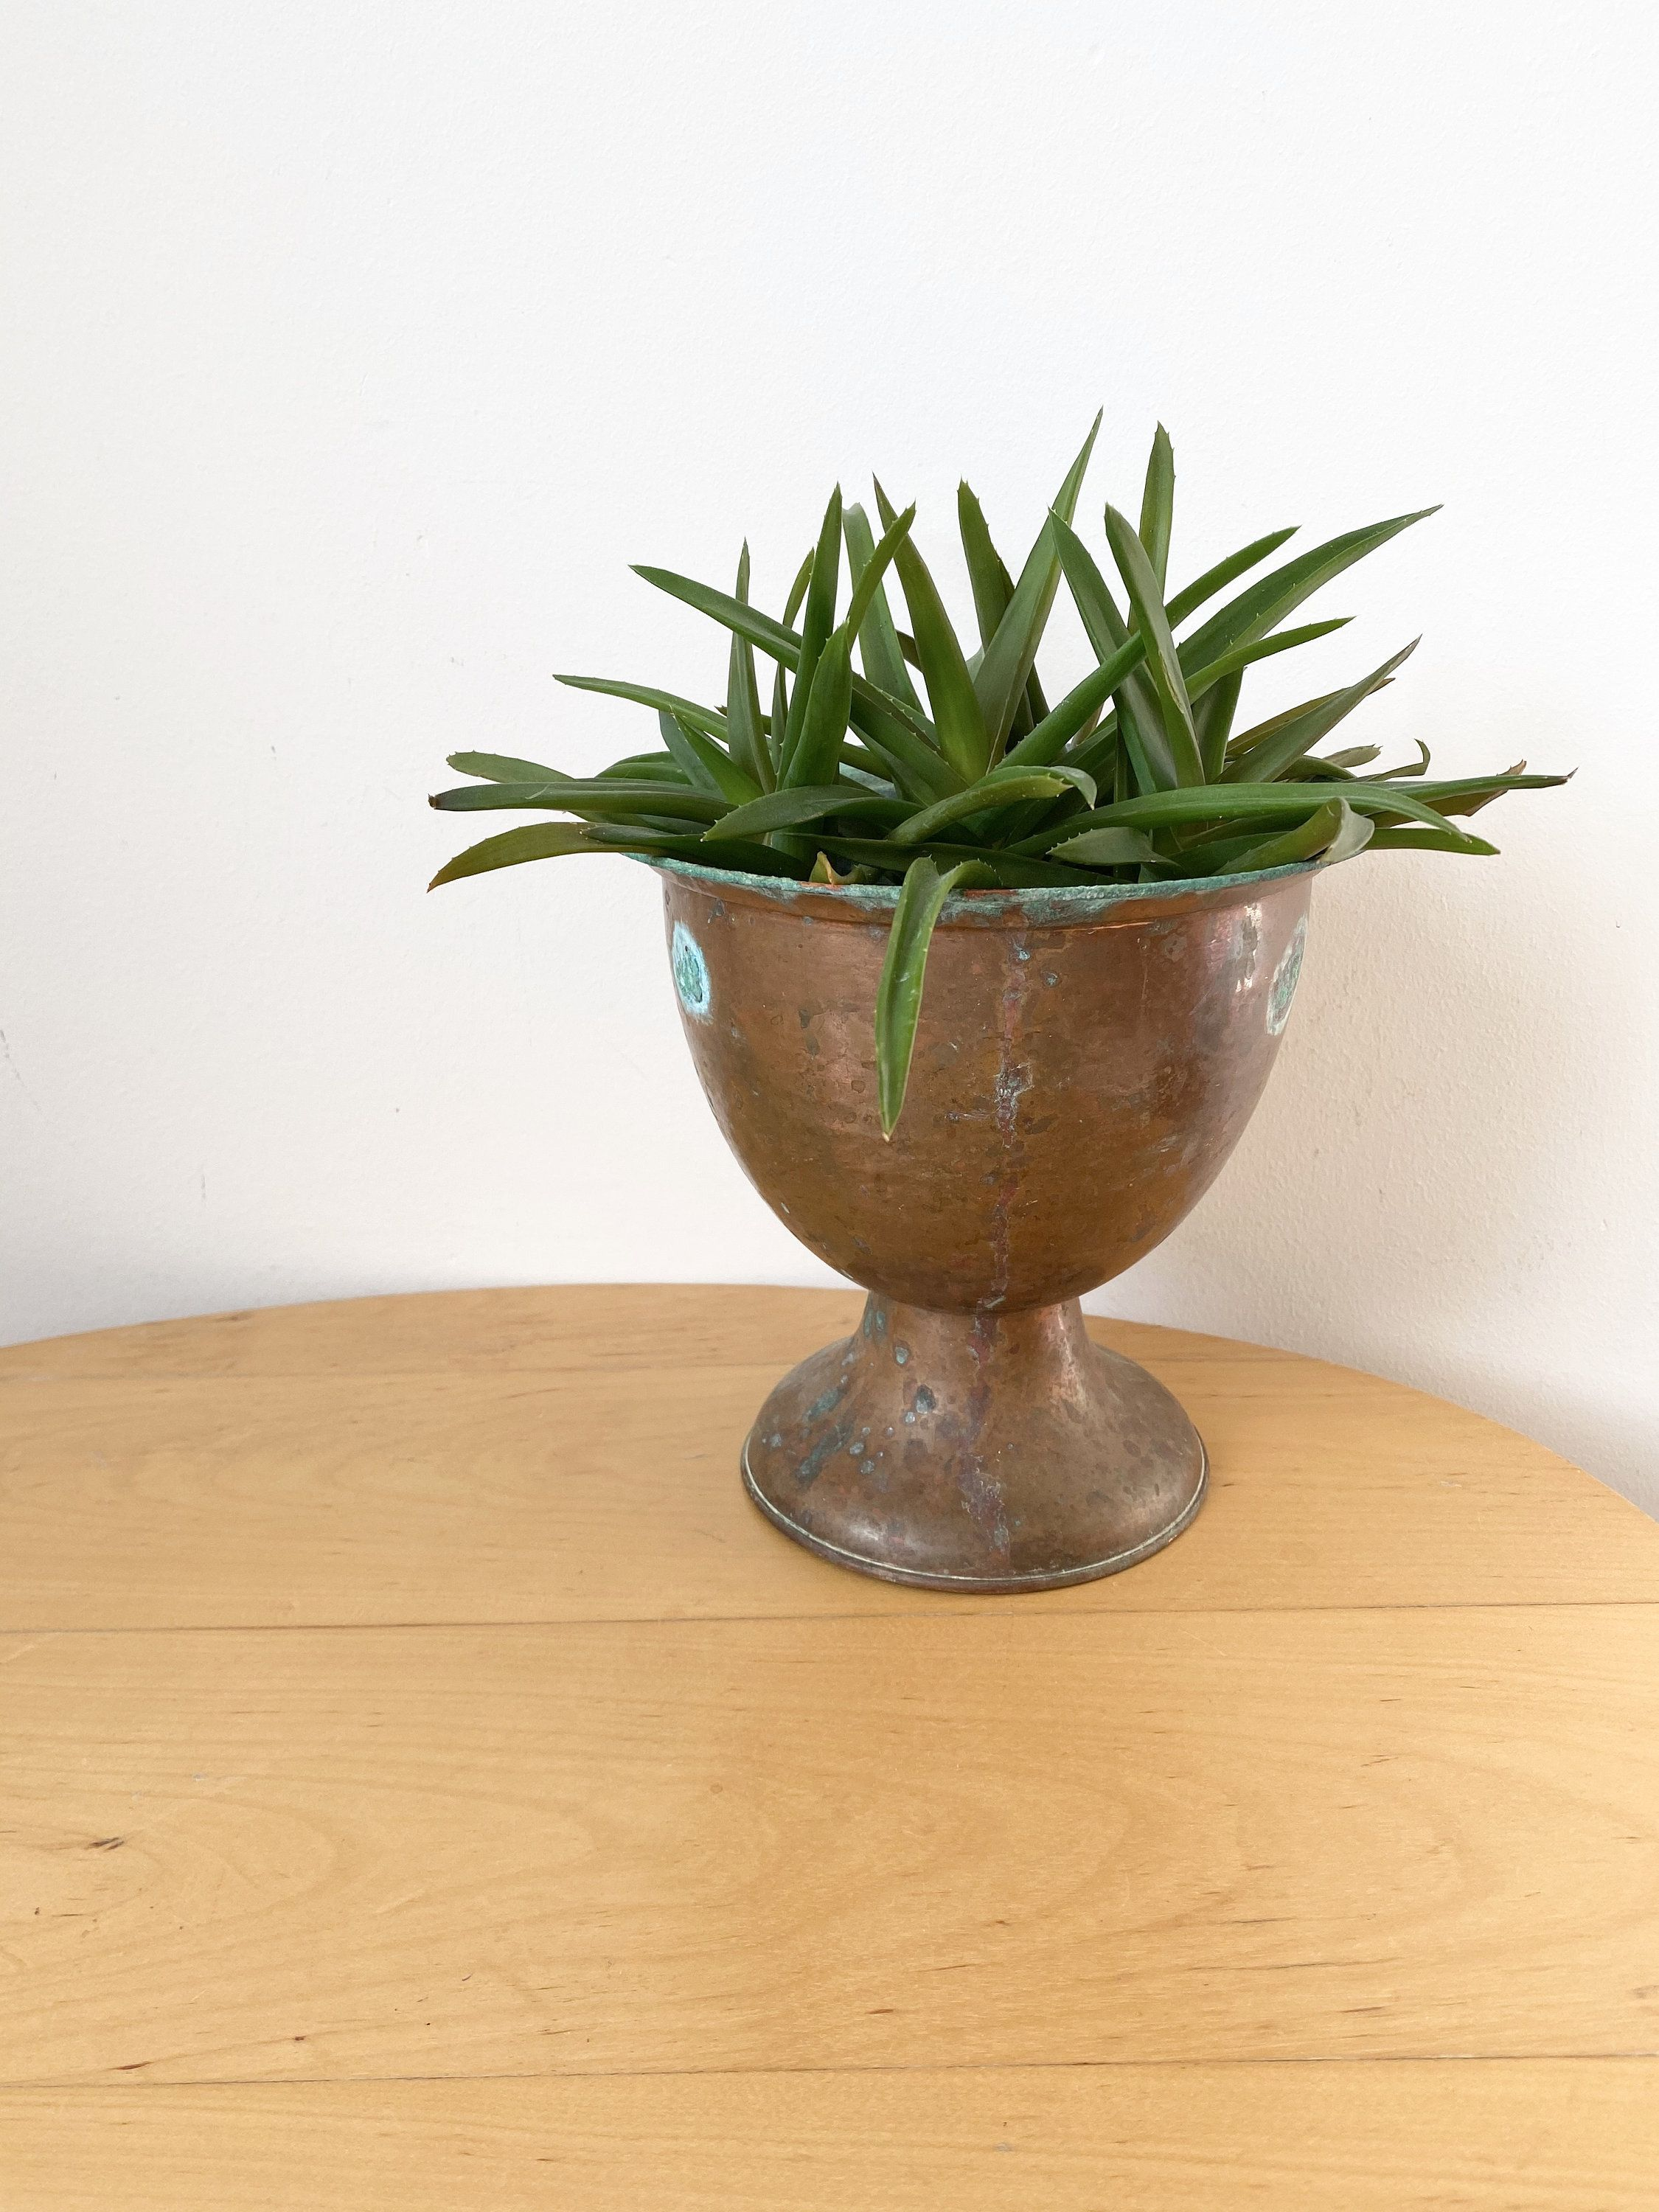 Pin On Planters Flower Pots